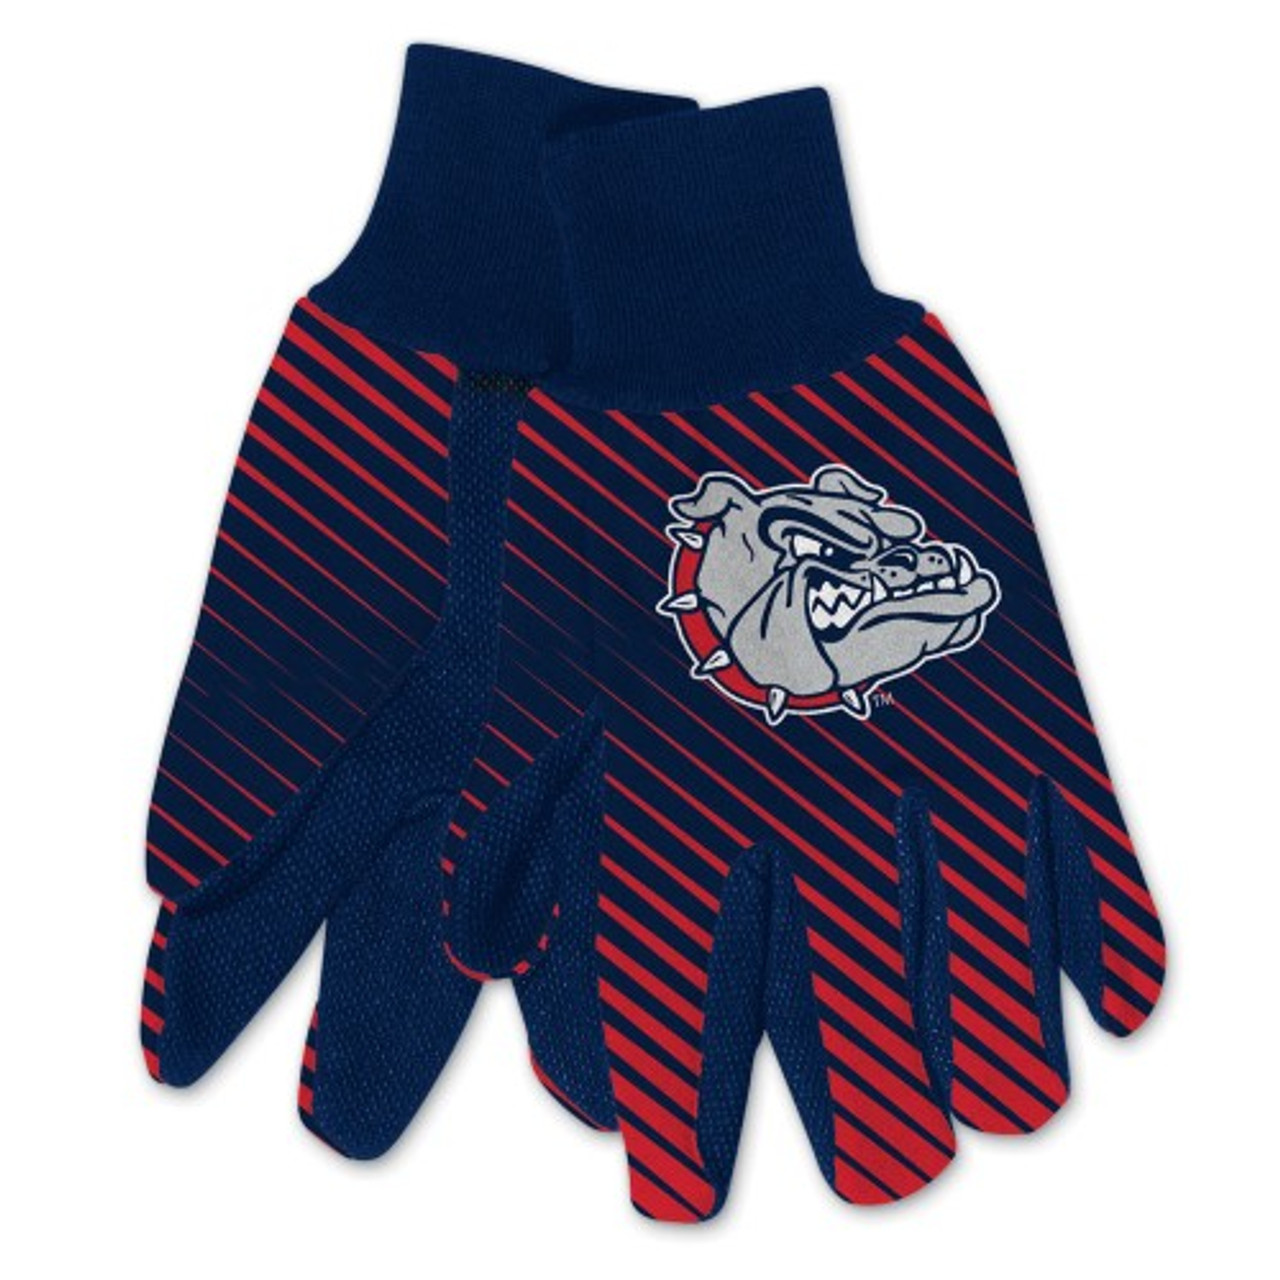 Gonzaga Bulldogs Gloves Two Tone Style Adult Size - Special Order